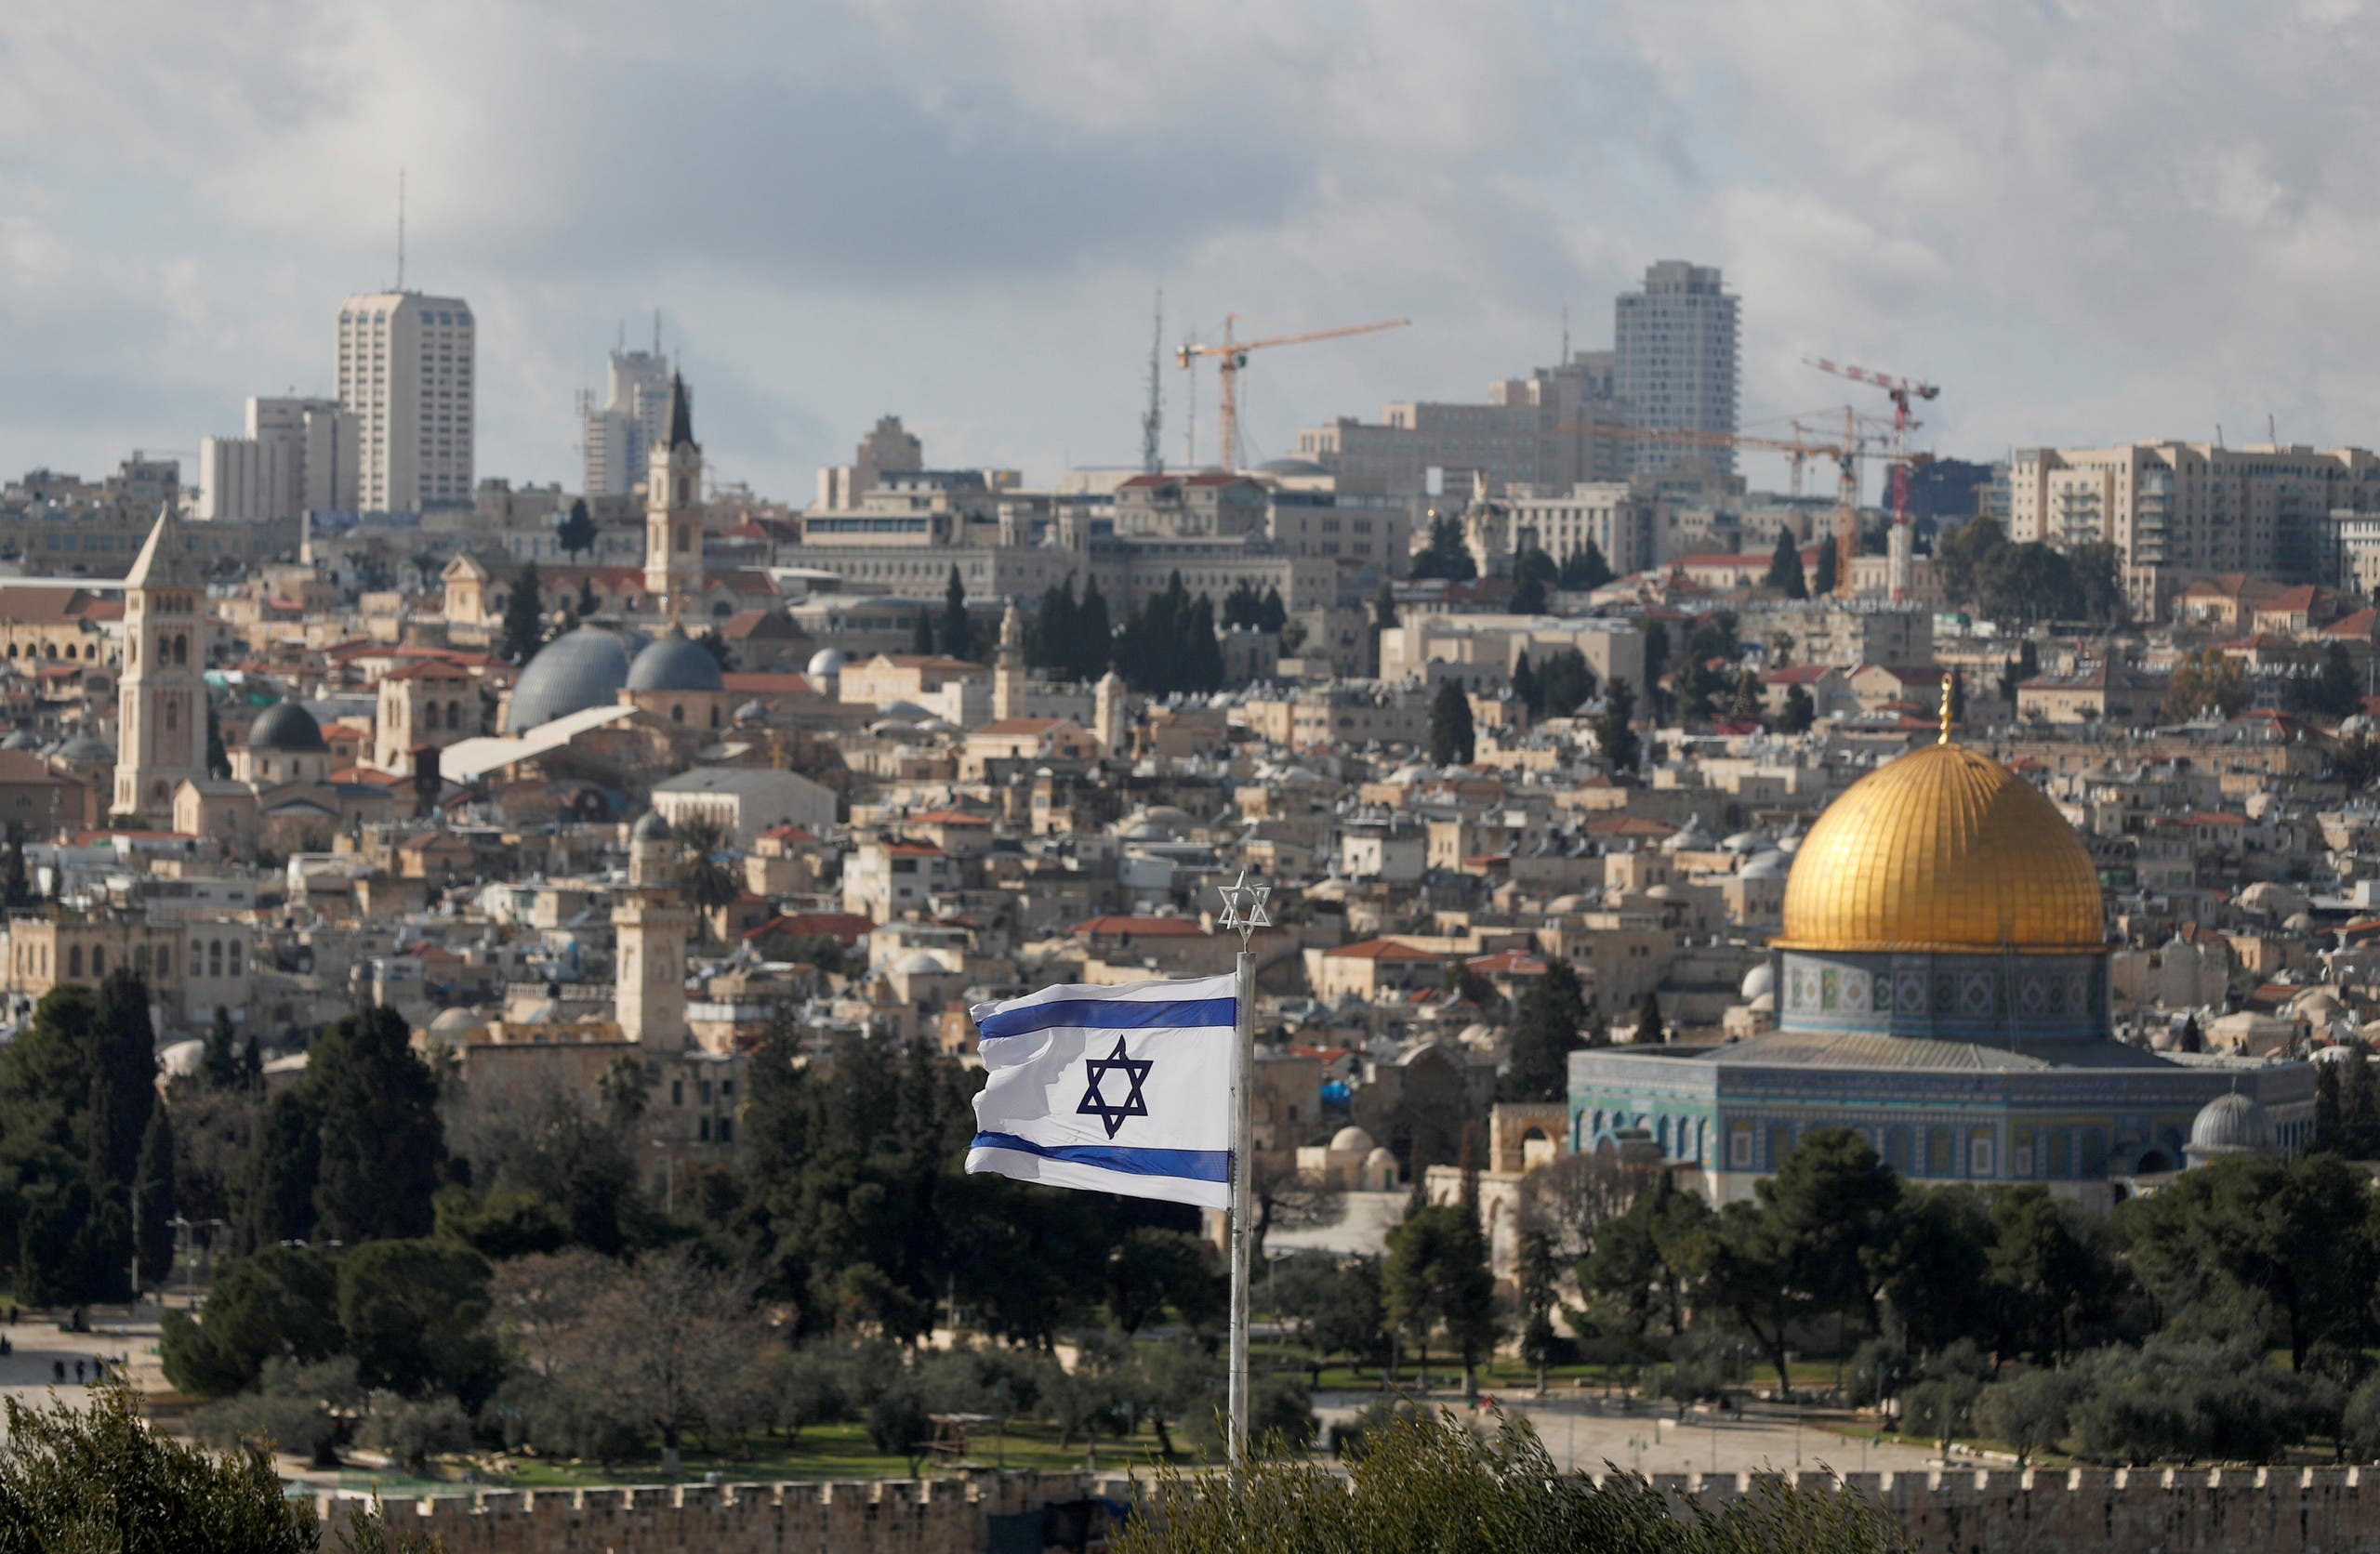 An Israeli flag is seen near the Dome of the Rock, located in East Jerusalem on January 24, 2020. (Reuters)